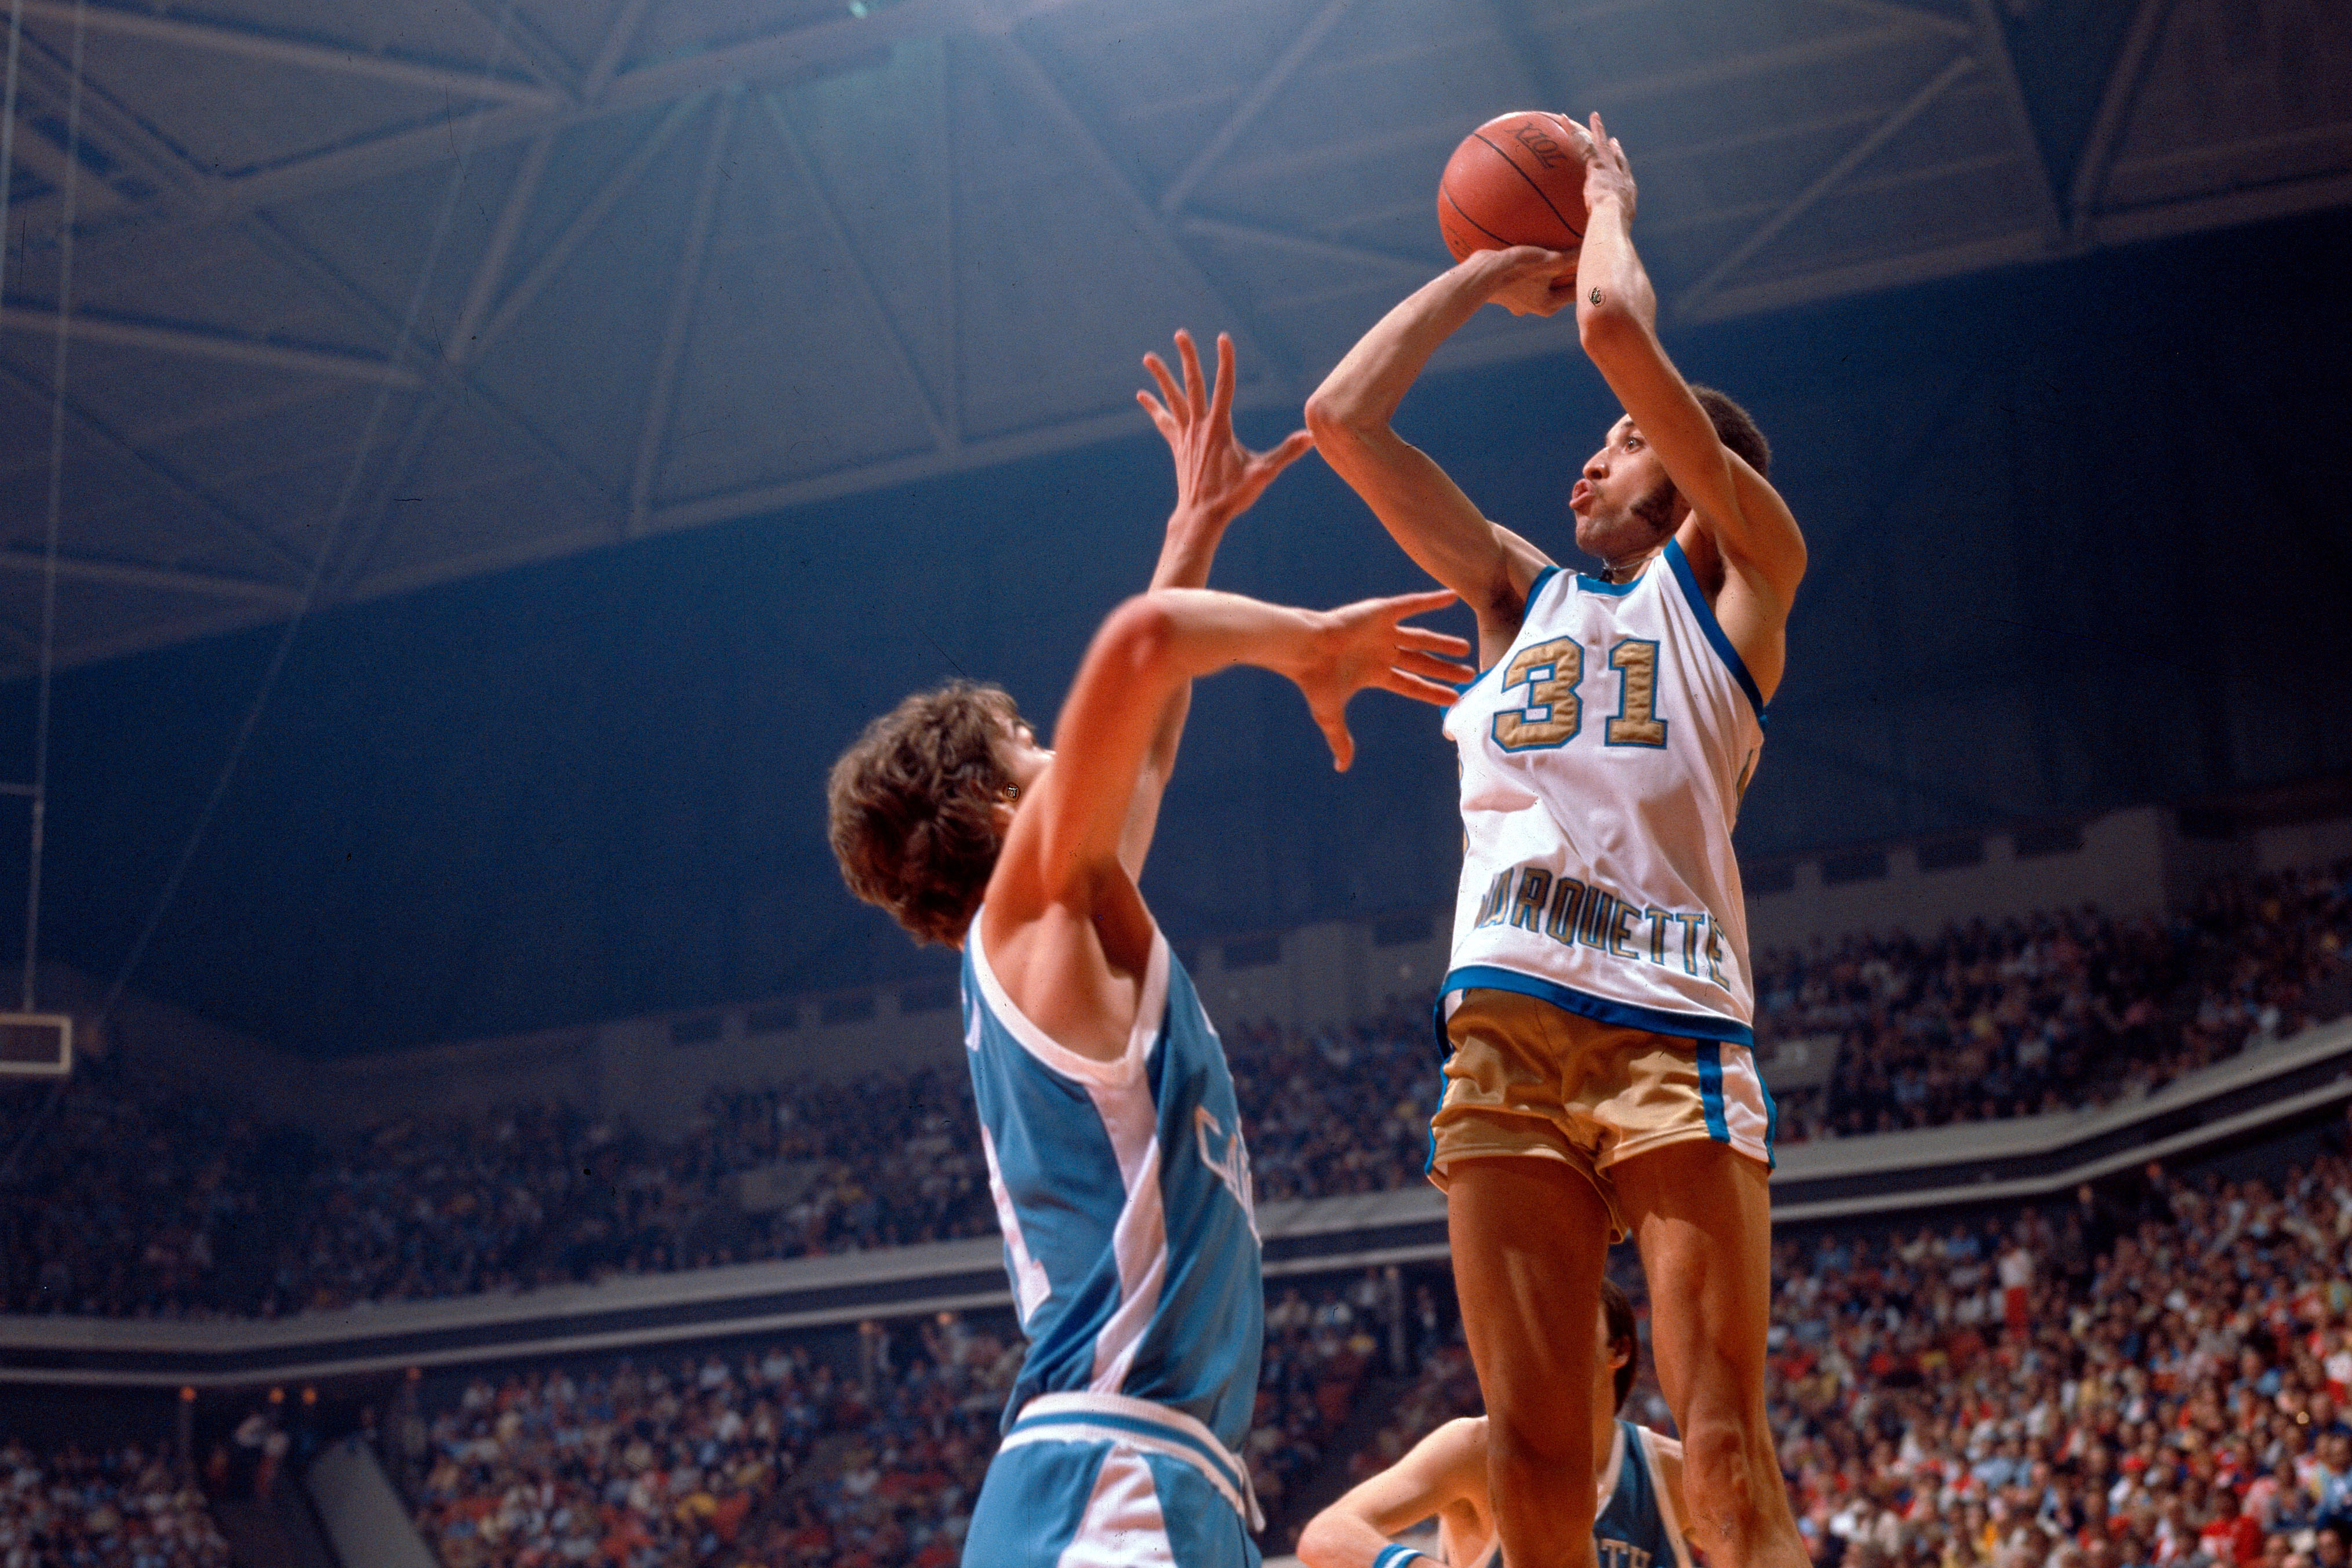 marquette untucked throwback uniforms